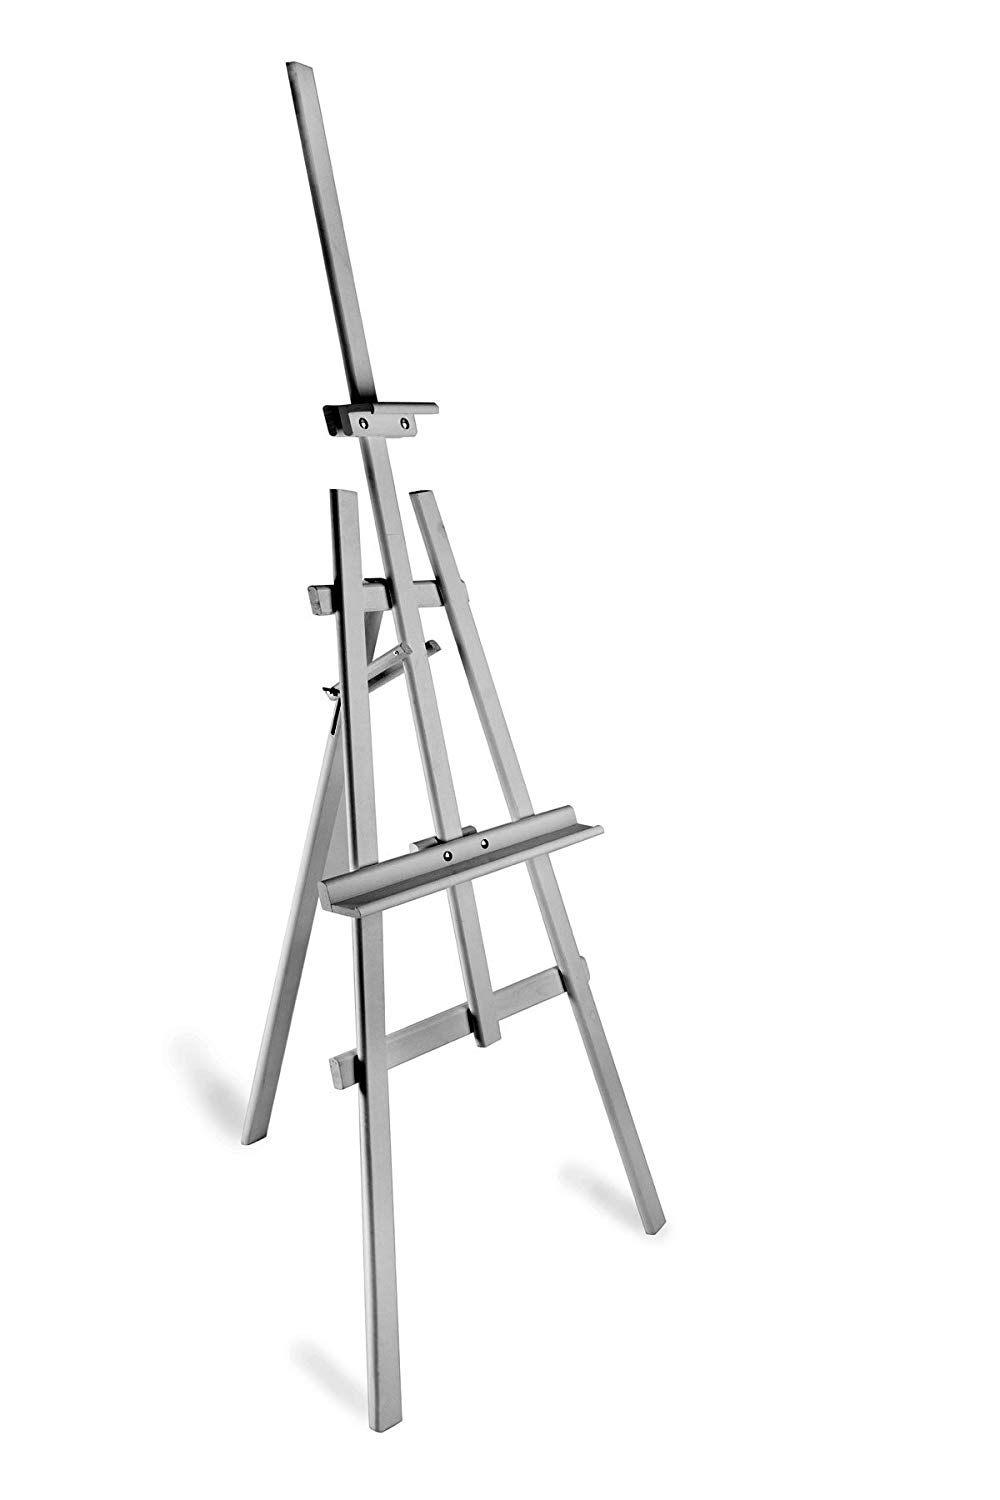 Darice 5209-66 Wood Easel Stand in Black Finish 5-Inch